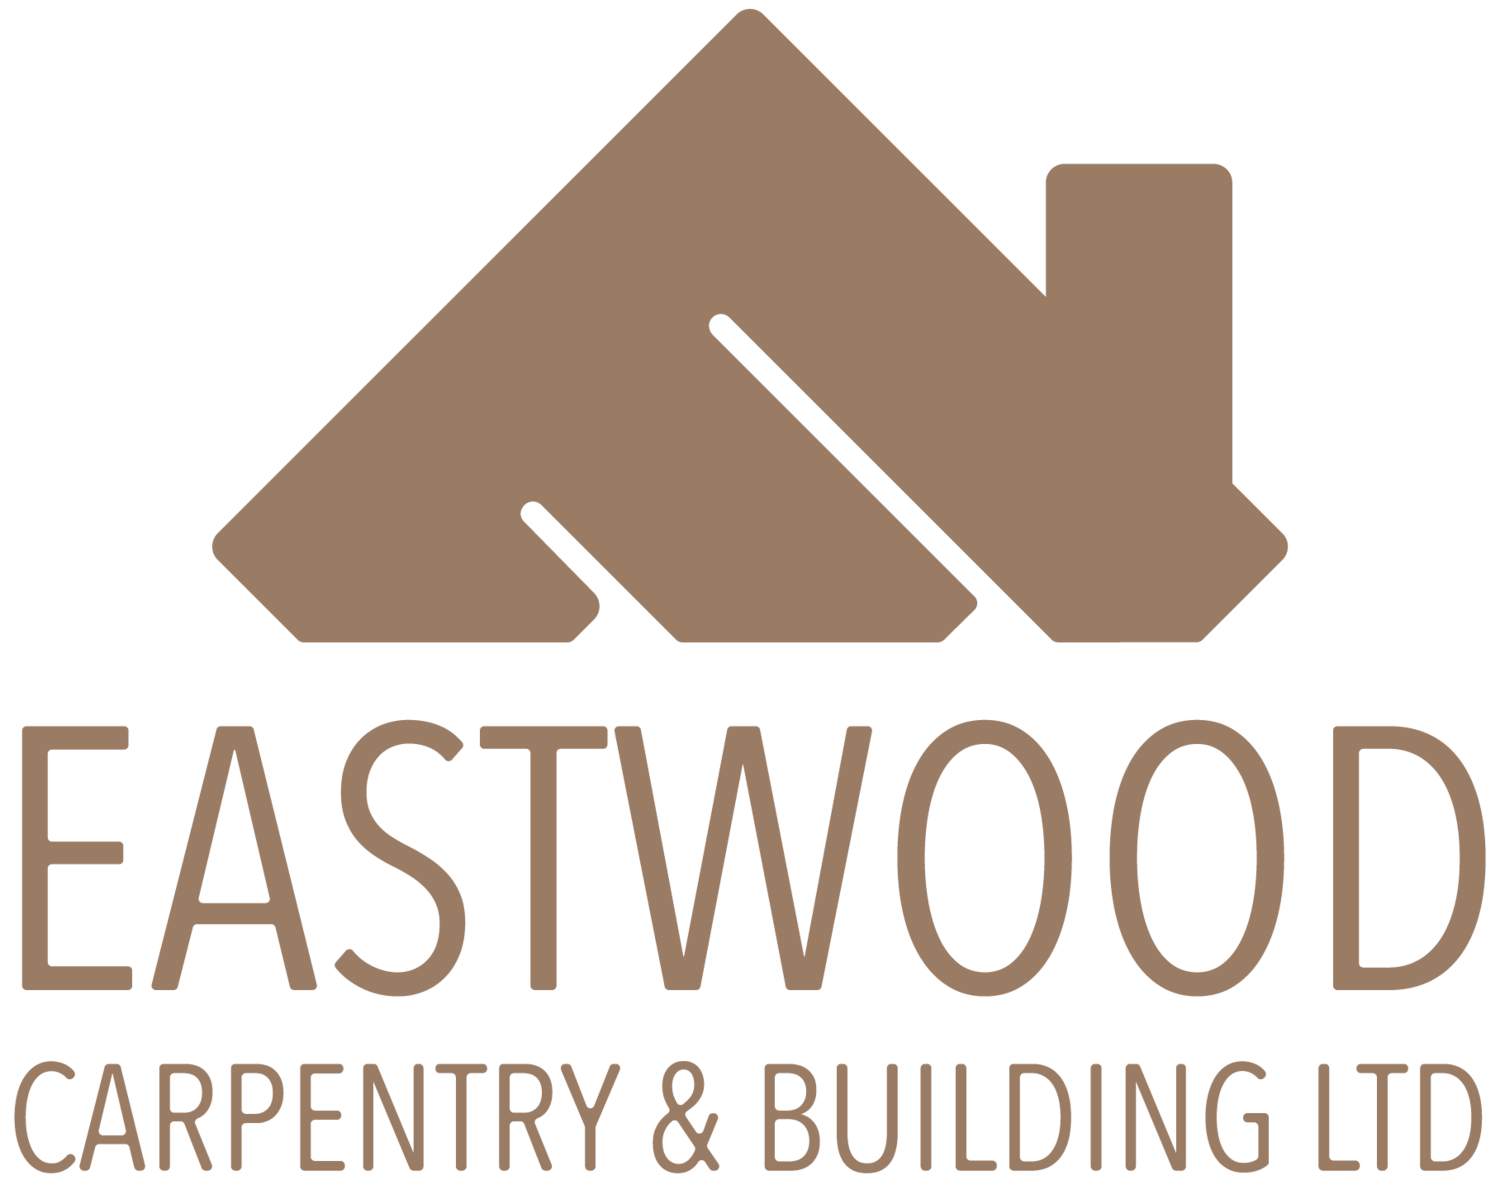 Eastwood Carpentry & Building Ltd